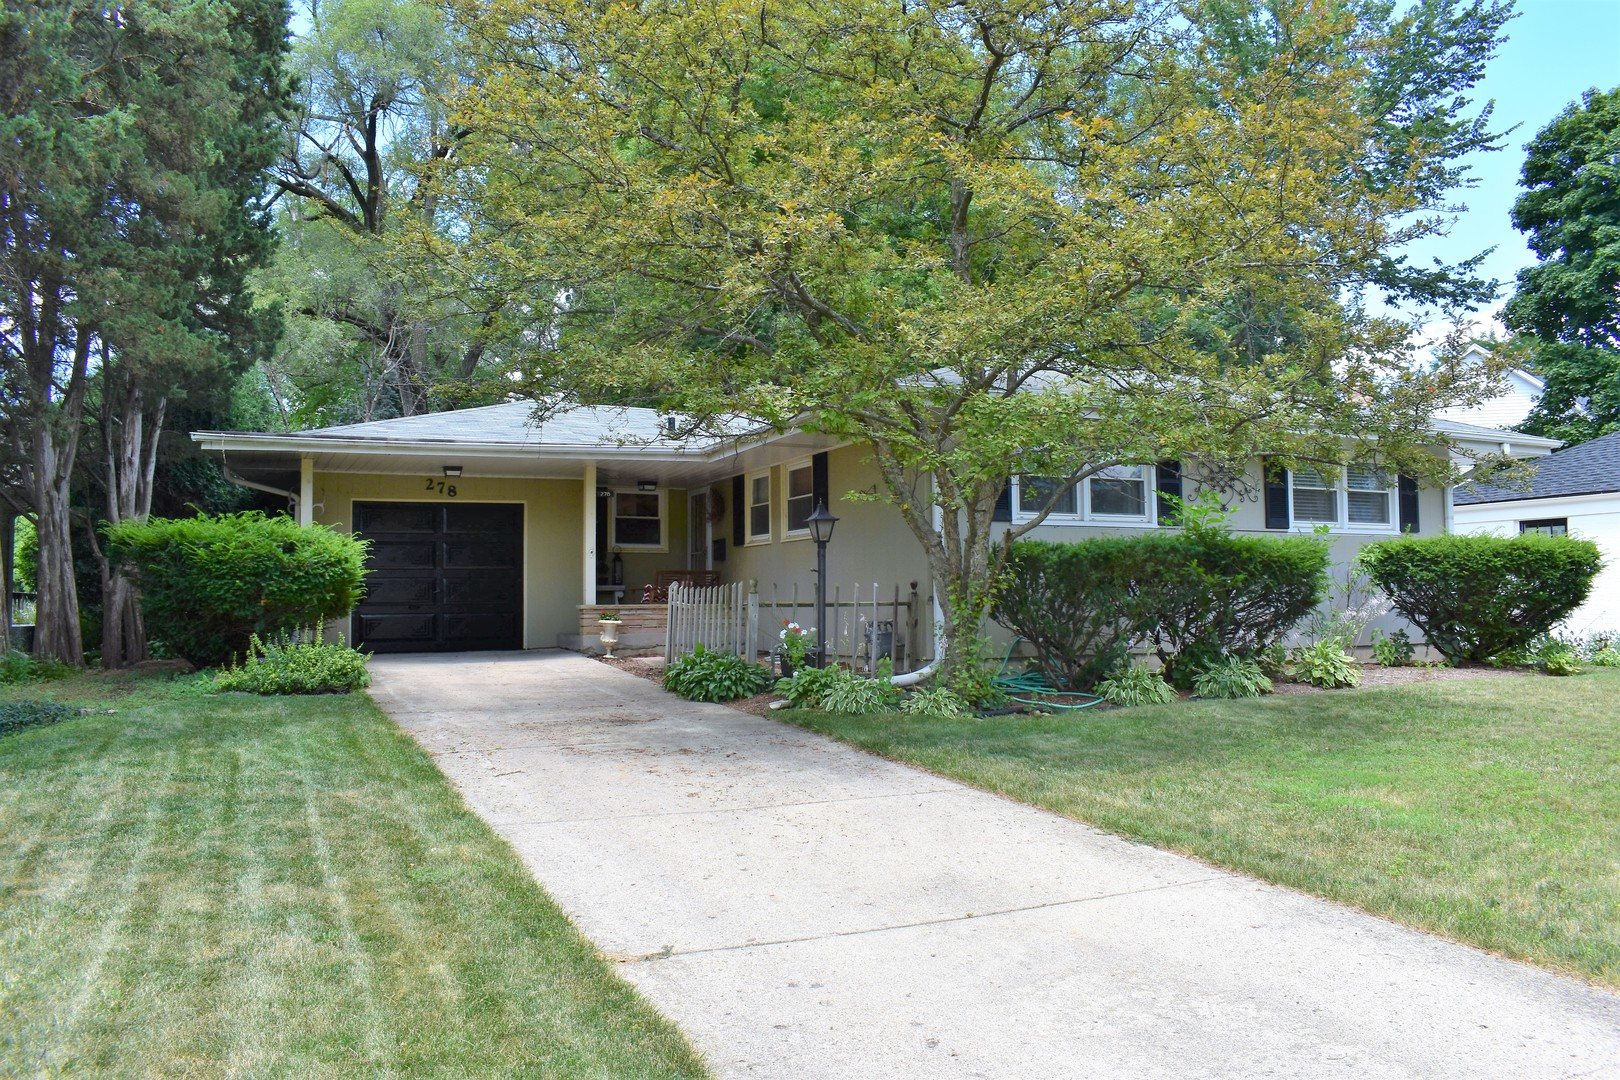 278 CHESTERFIELD AVENUE, GLEN ELLYN, IL 60137